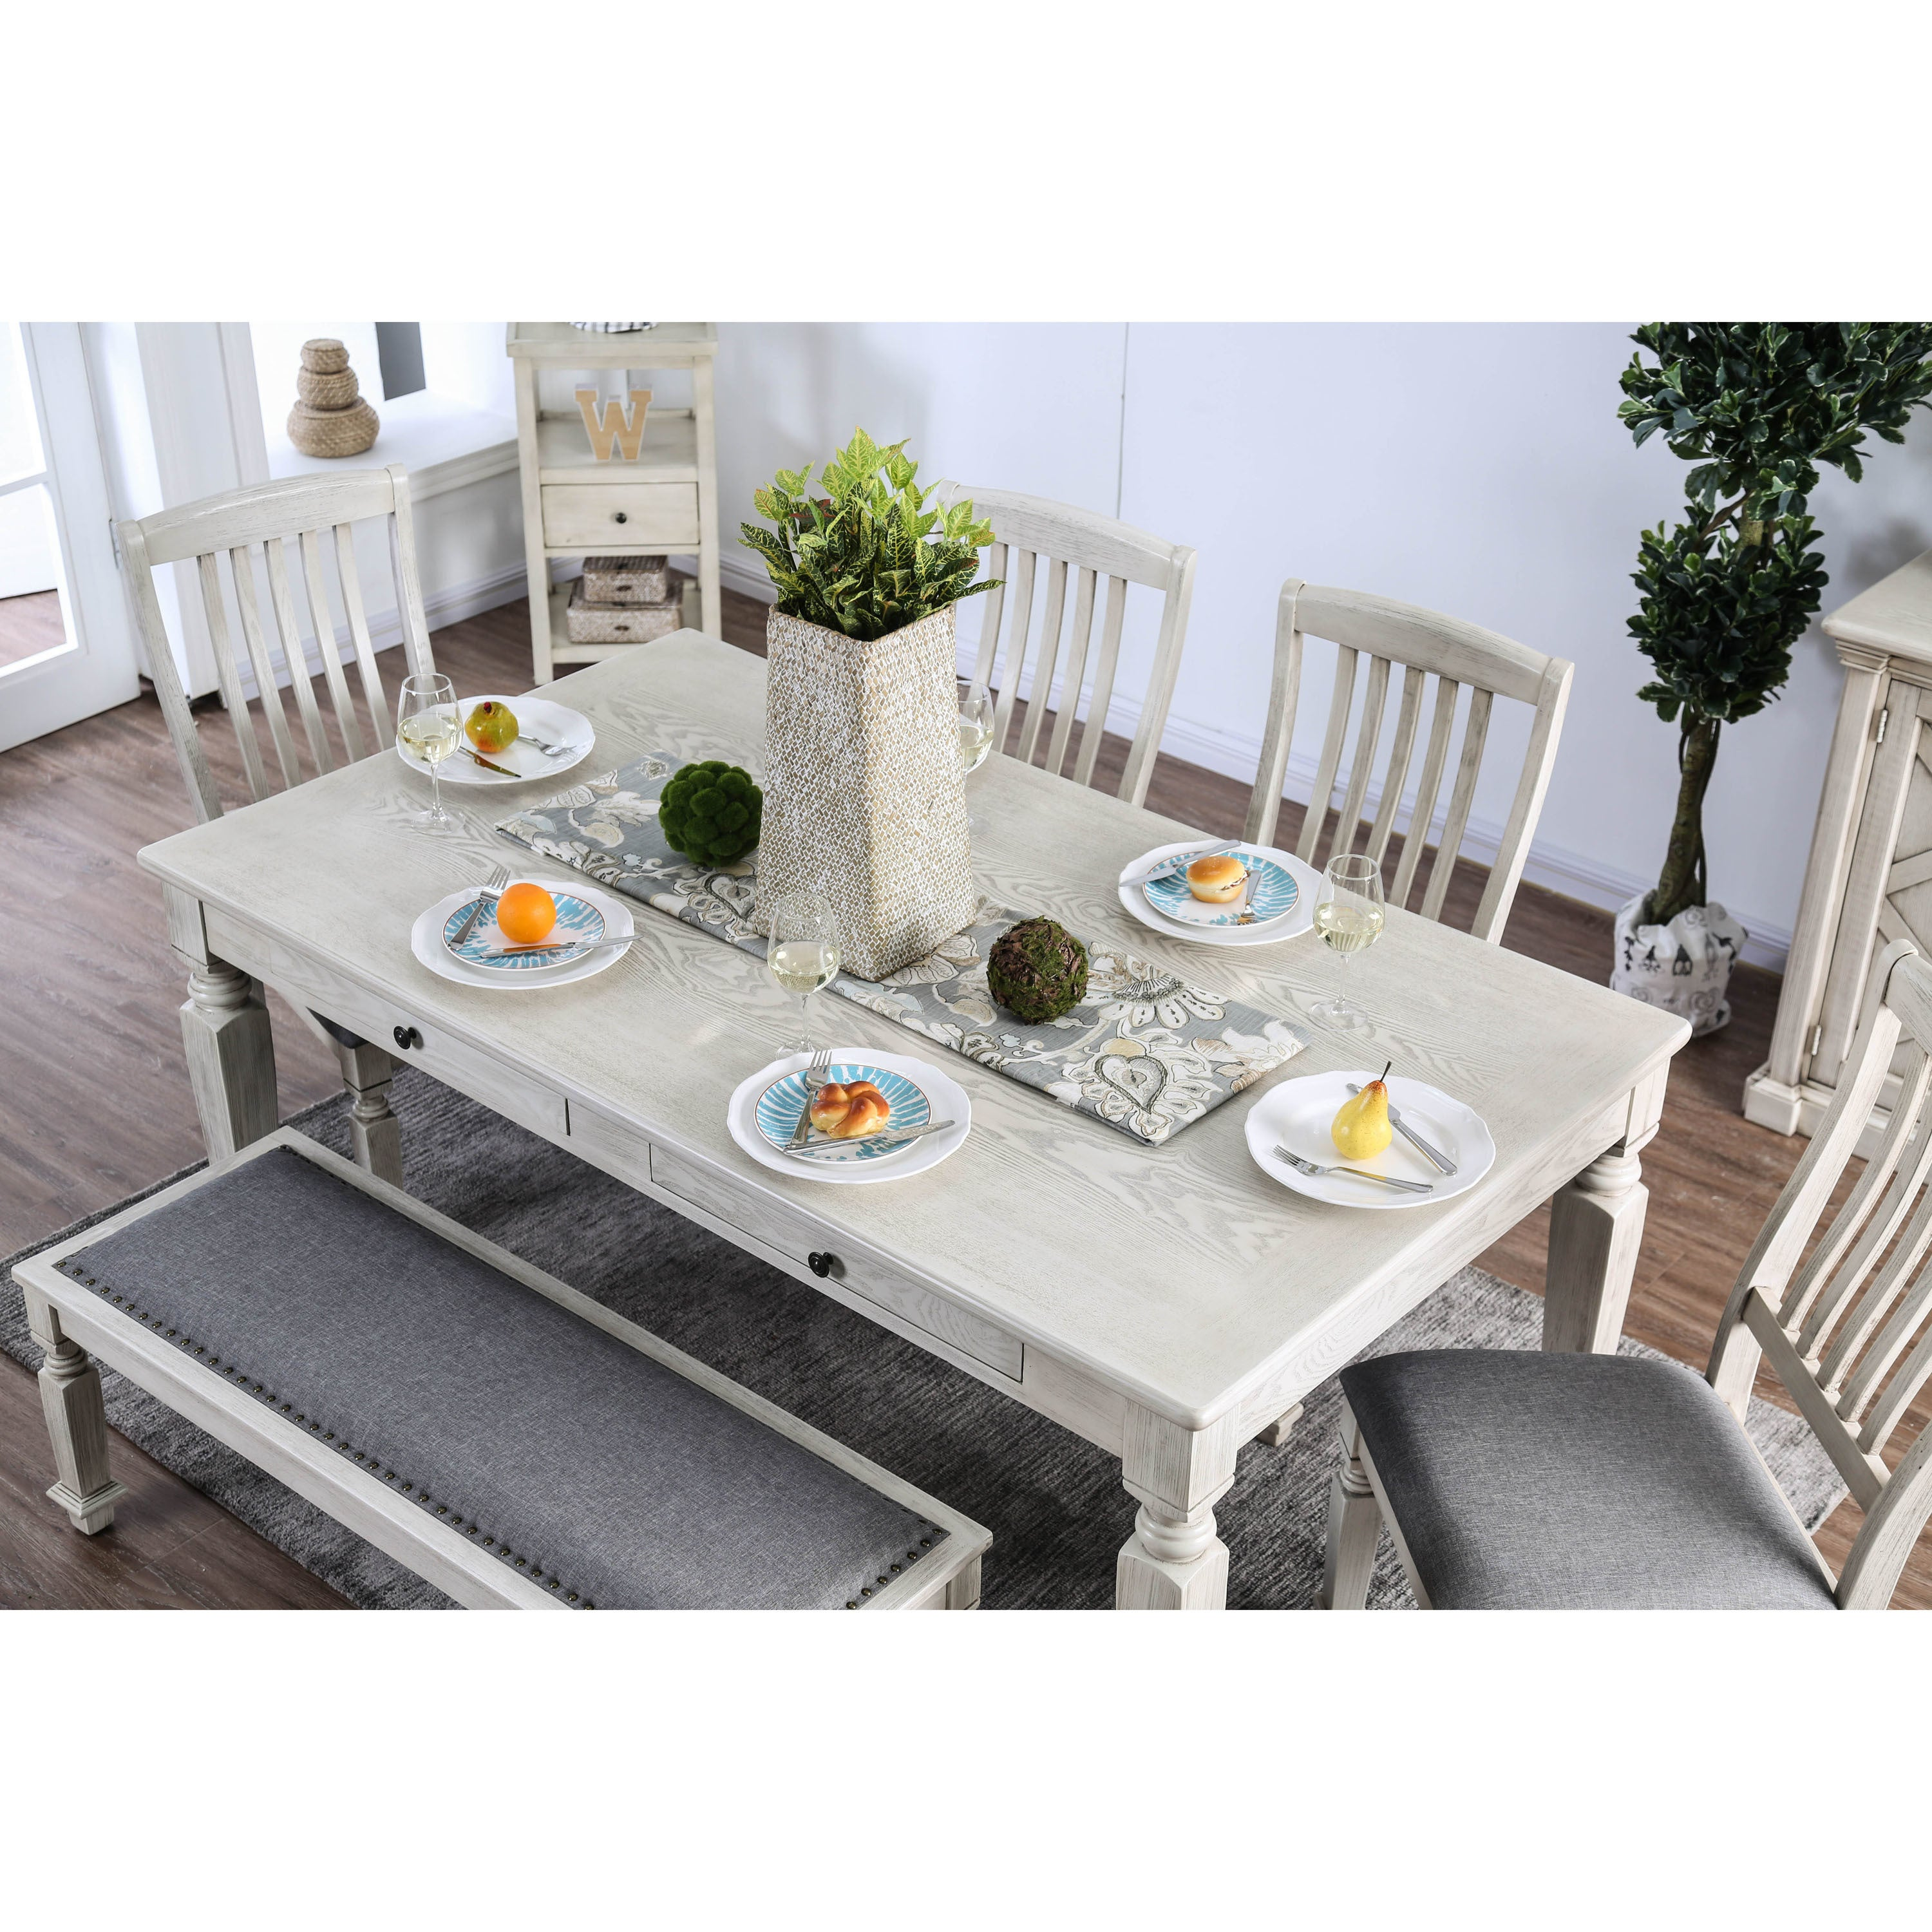 Shop Furniture Of America Tyler Rustic Farmhouse Dining Table   Antique  White   N/A   Free Shipping Today   Overstock.com   21500973